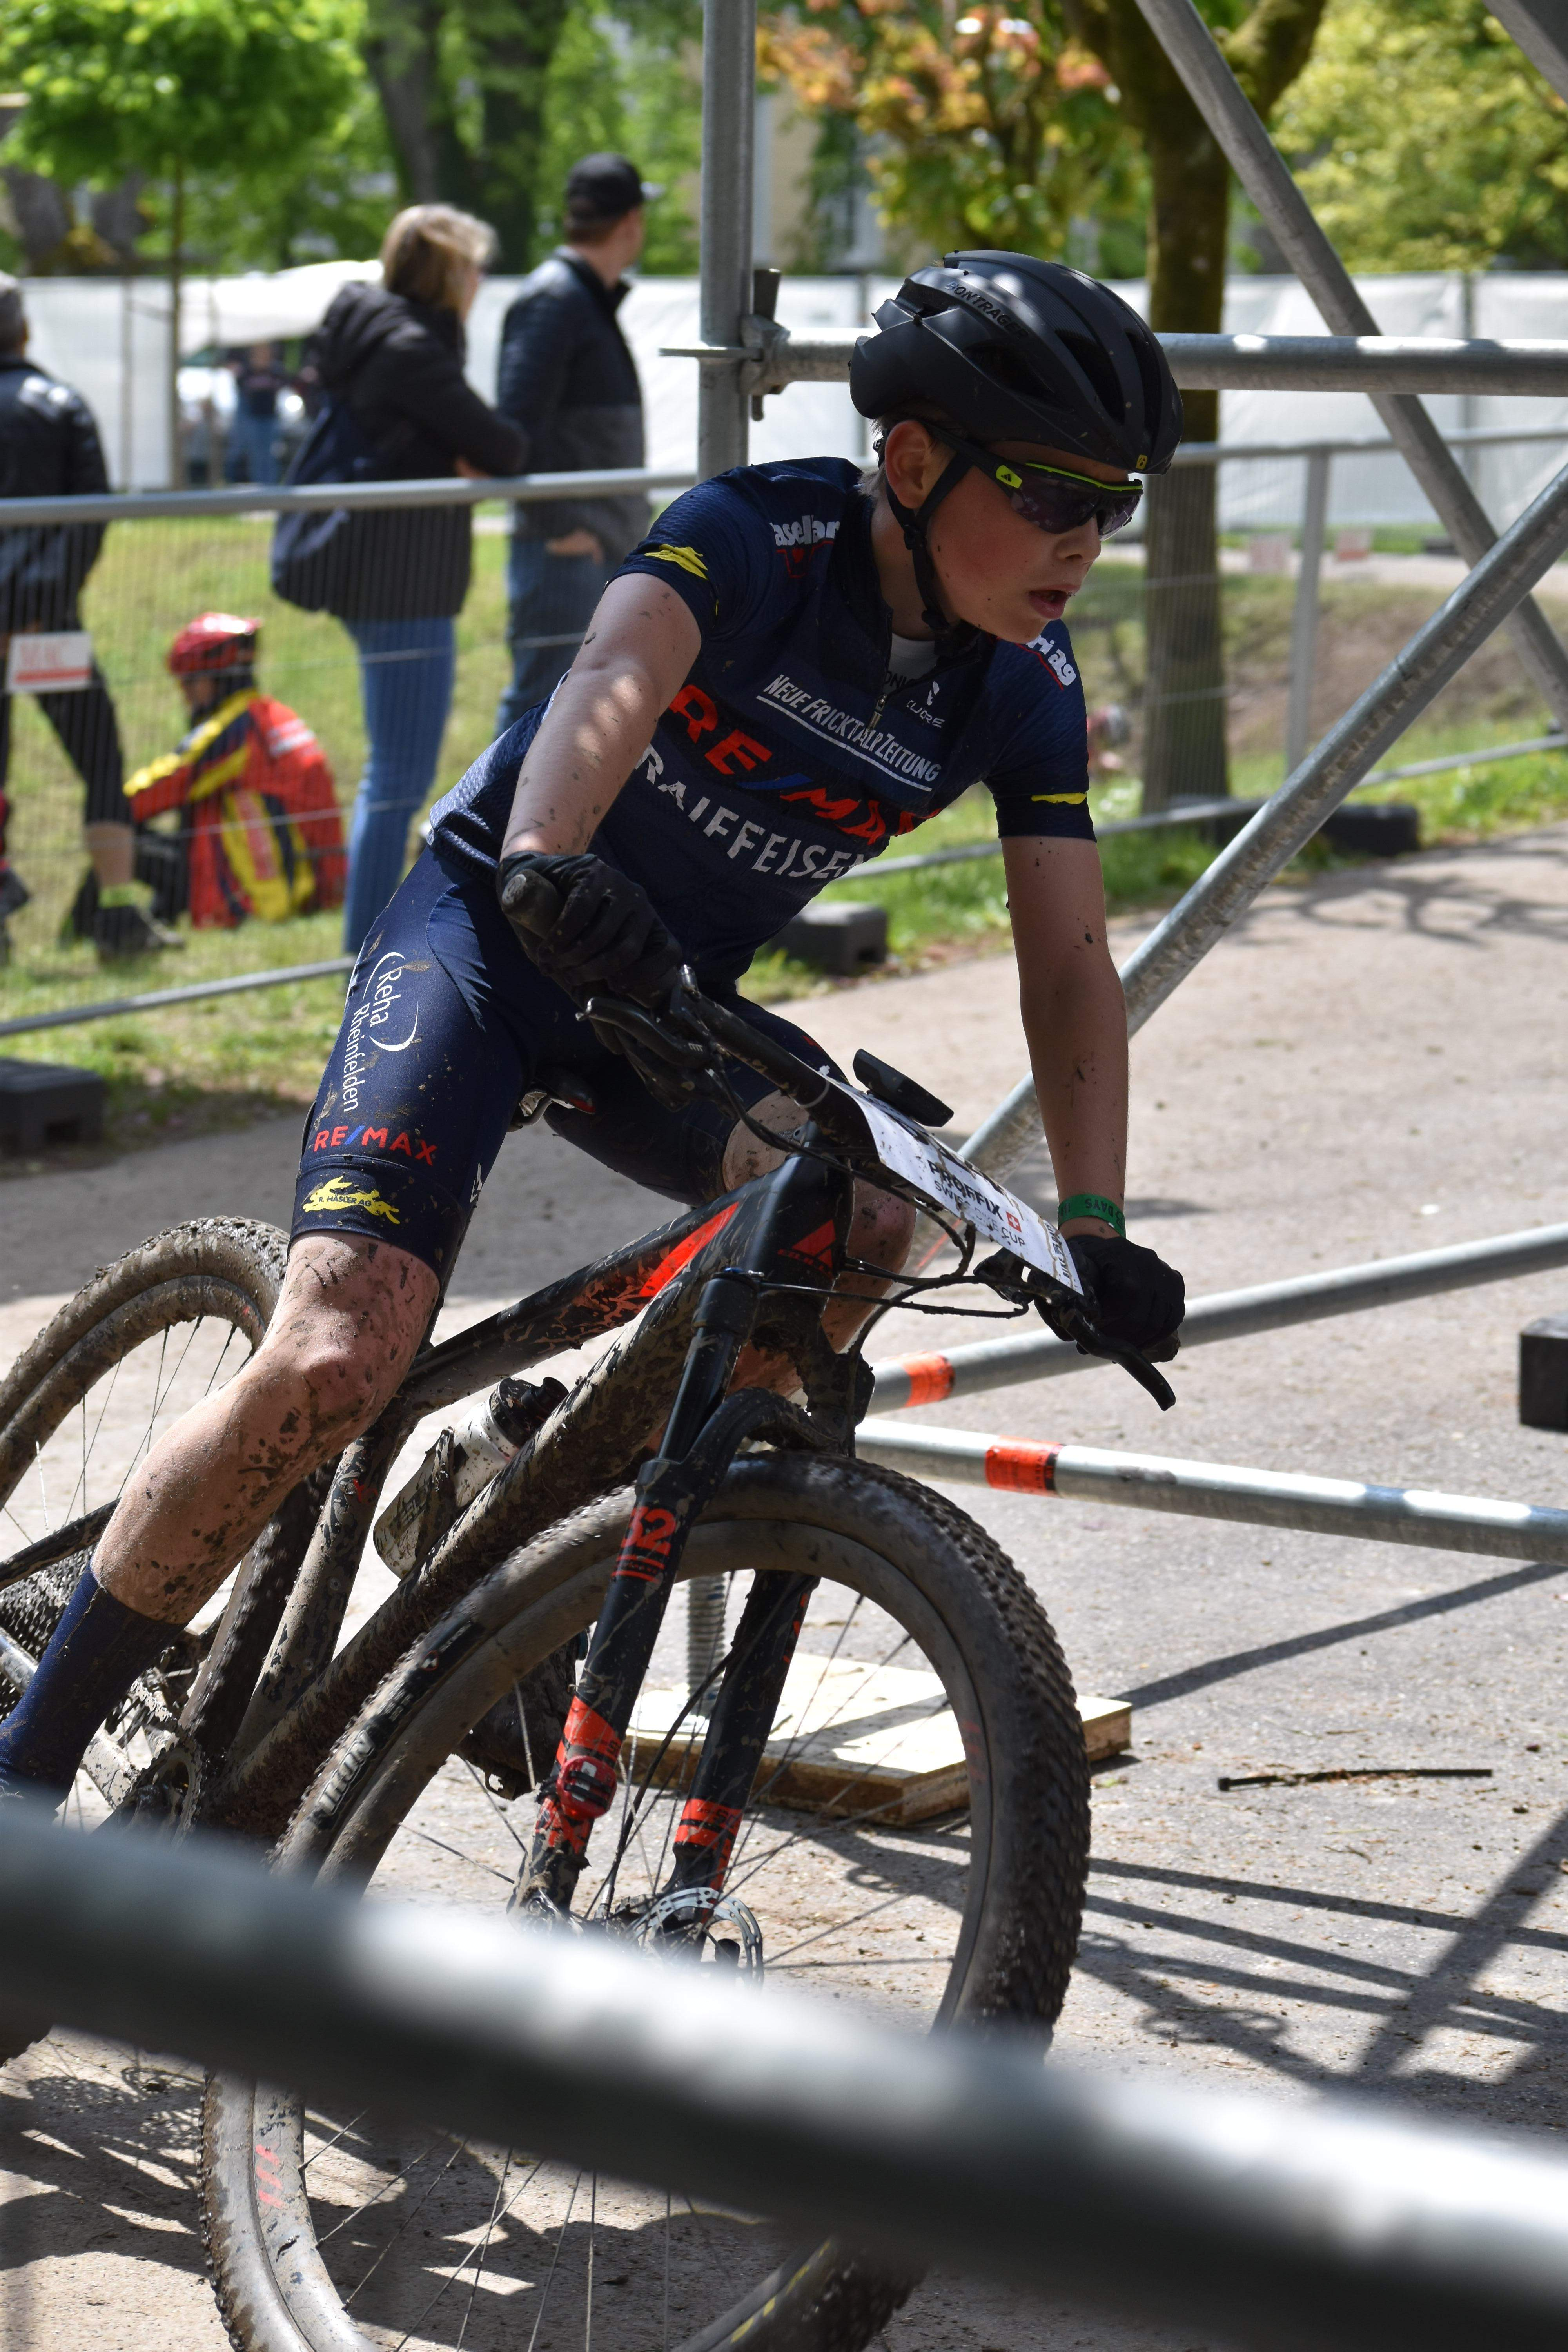 Tolle Leistung des RE/MAX Biketeams am Swisscup in Solothurn